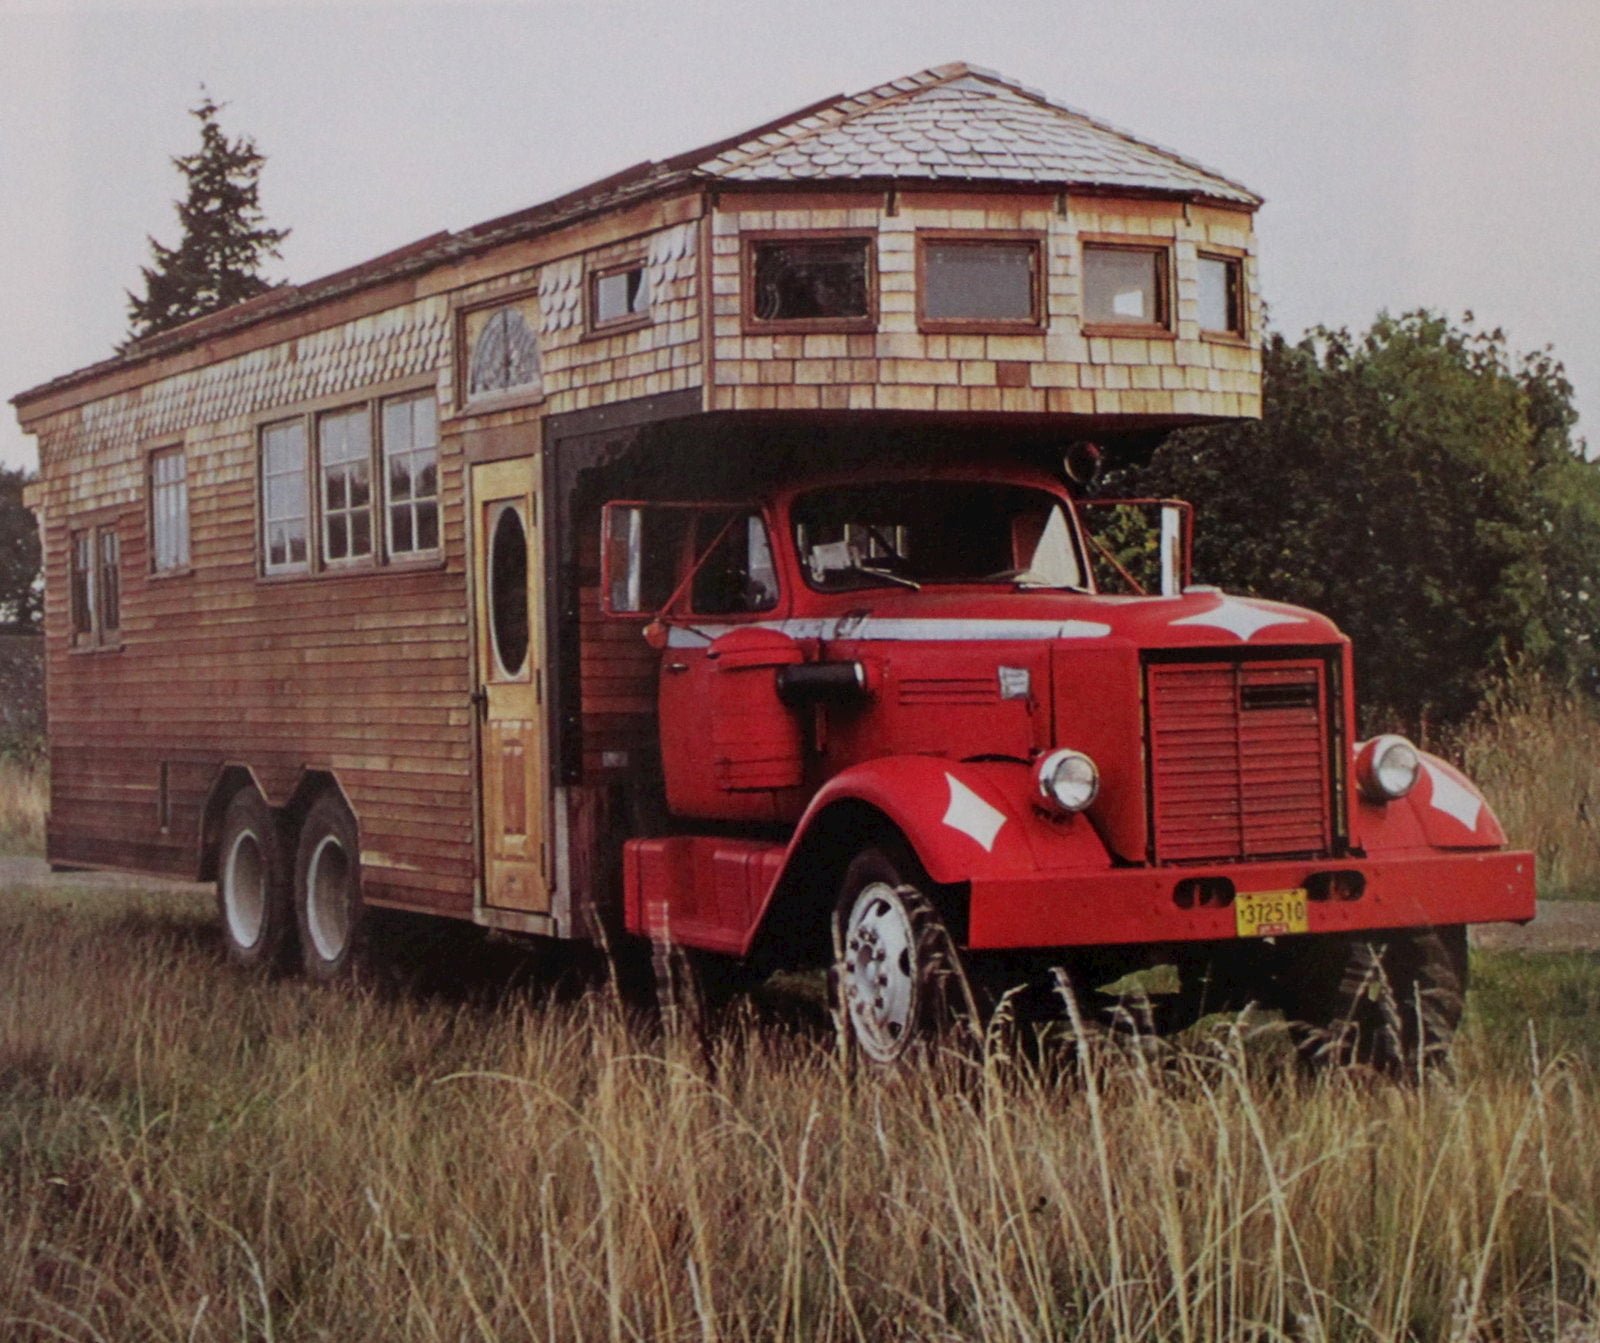 Bus with wooden built out structure parked in a field.